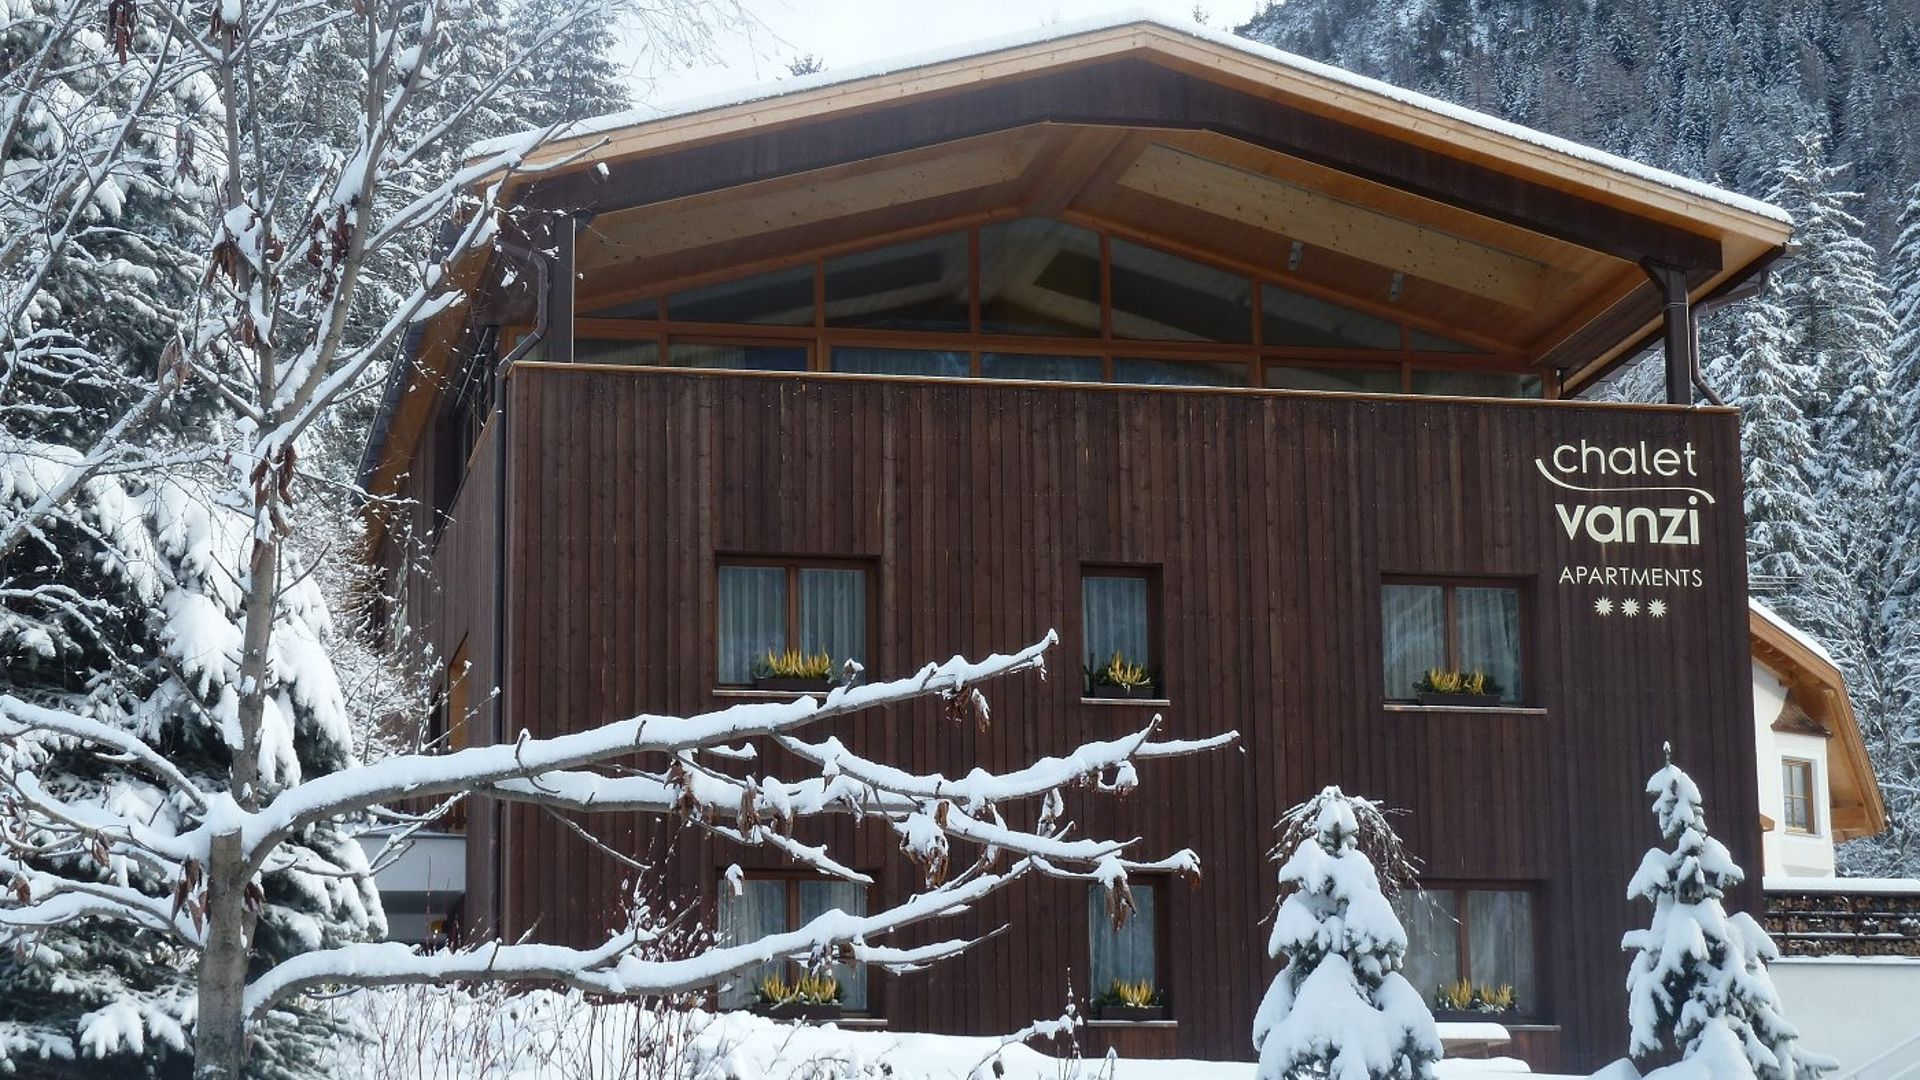 Image: Vanzi Chalet Apartments in Piccolino, San Martino in Badia